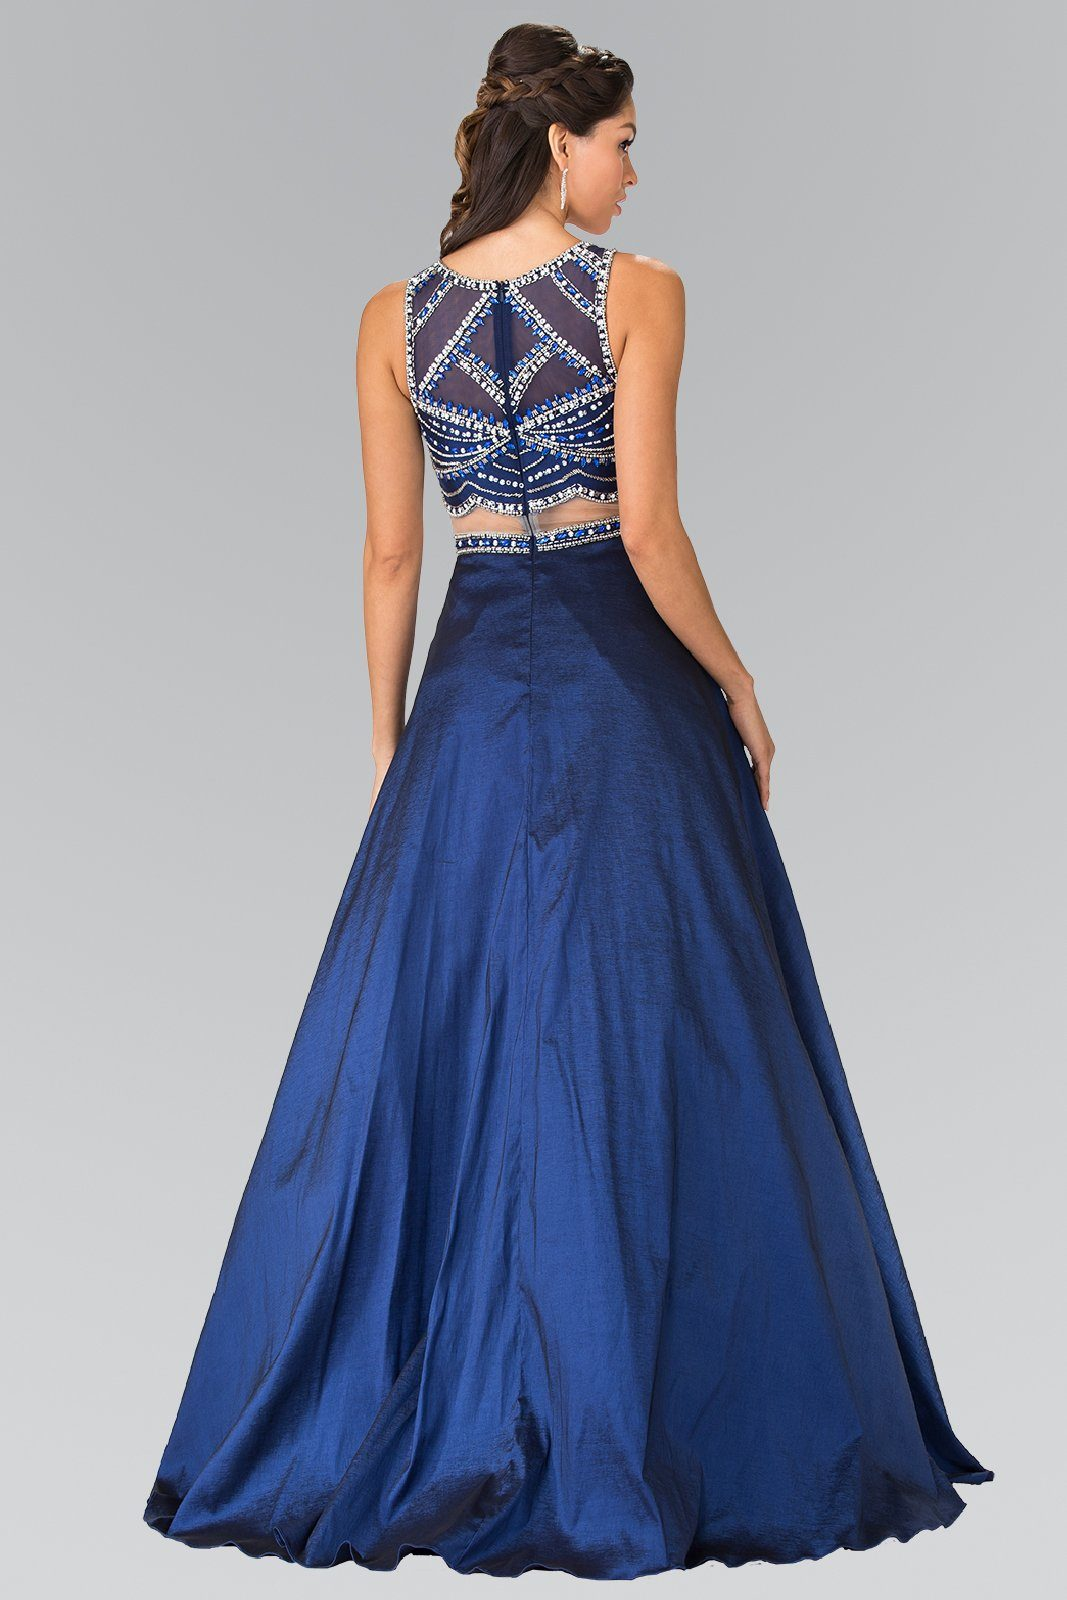 Two piece quinceanera prom ball gown dress gls2250 – Simply Fab Dress